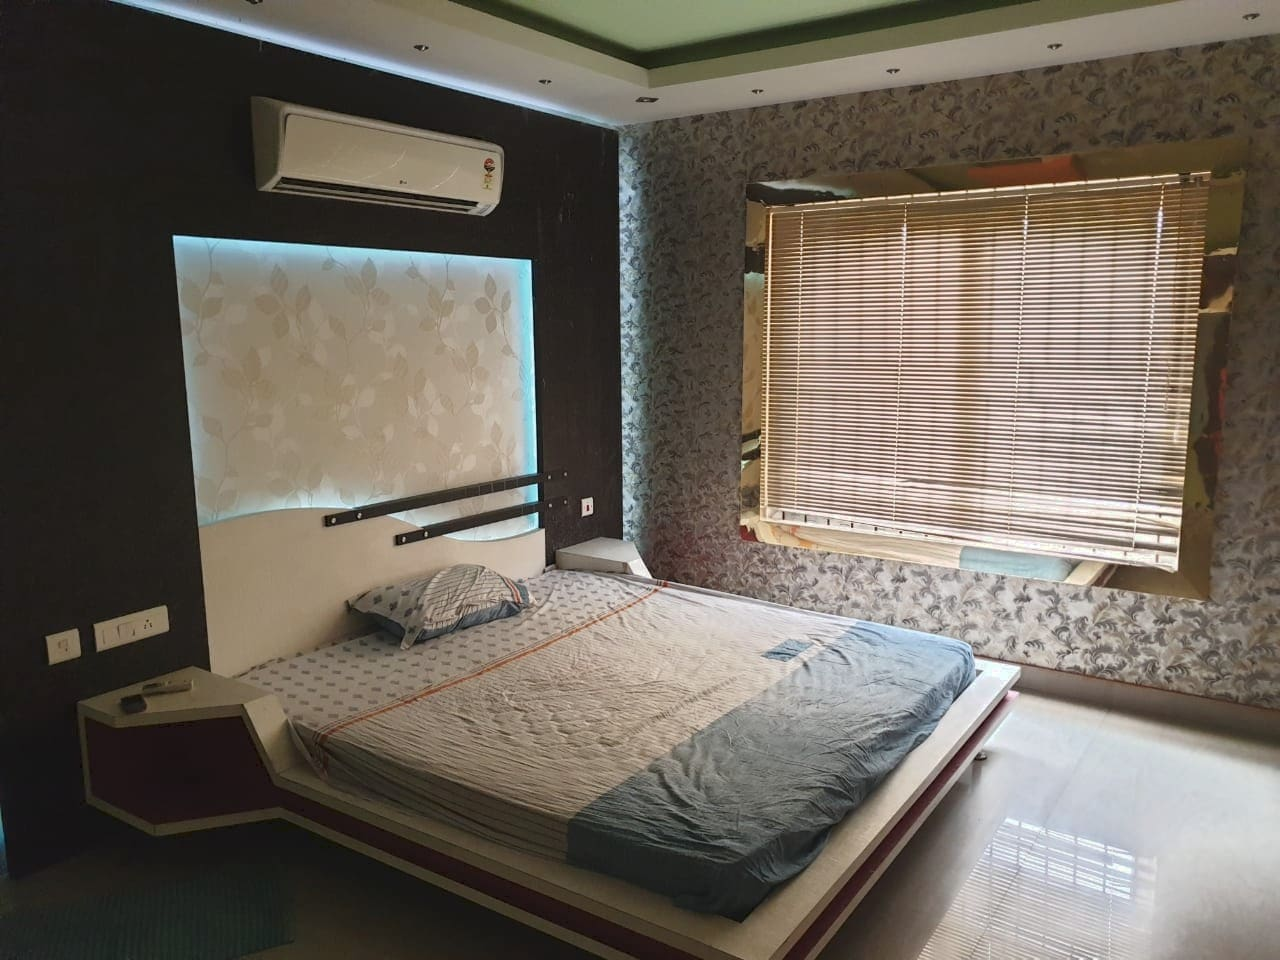 Bedroom 1 w/attached Bathroom and Dressing room.